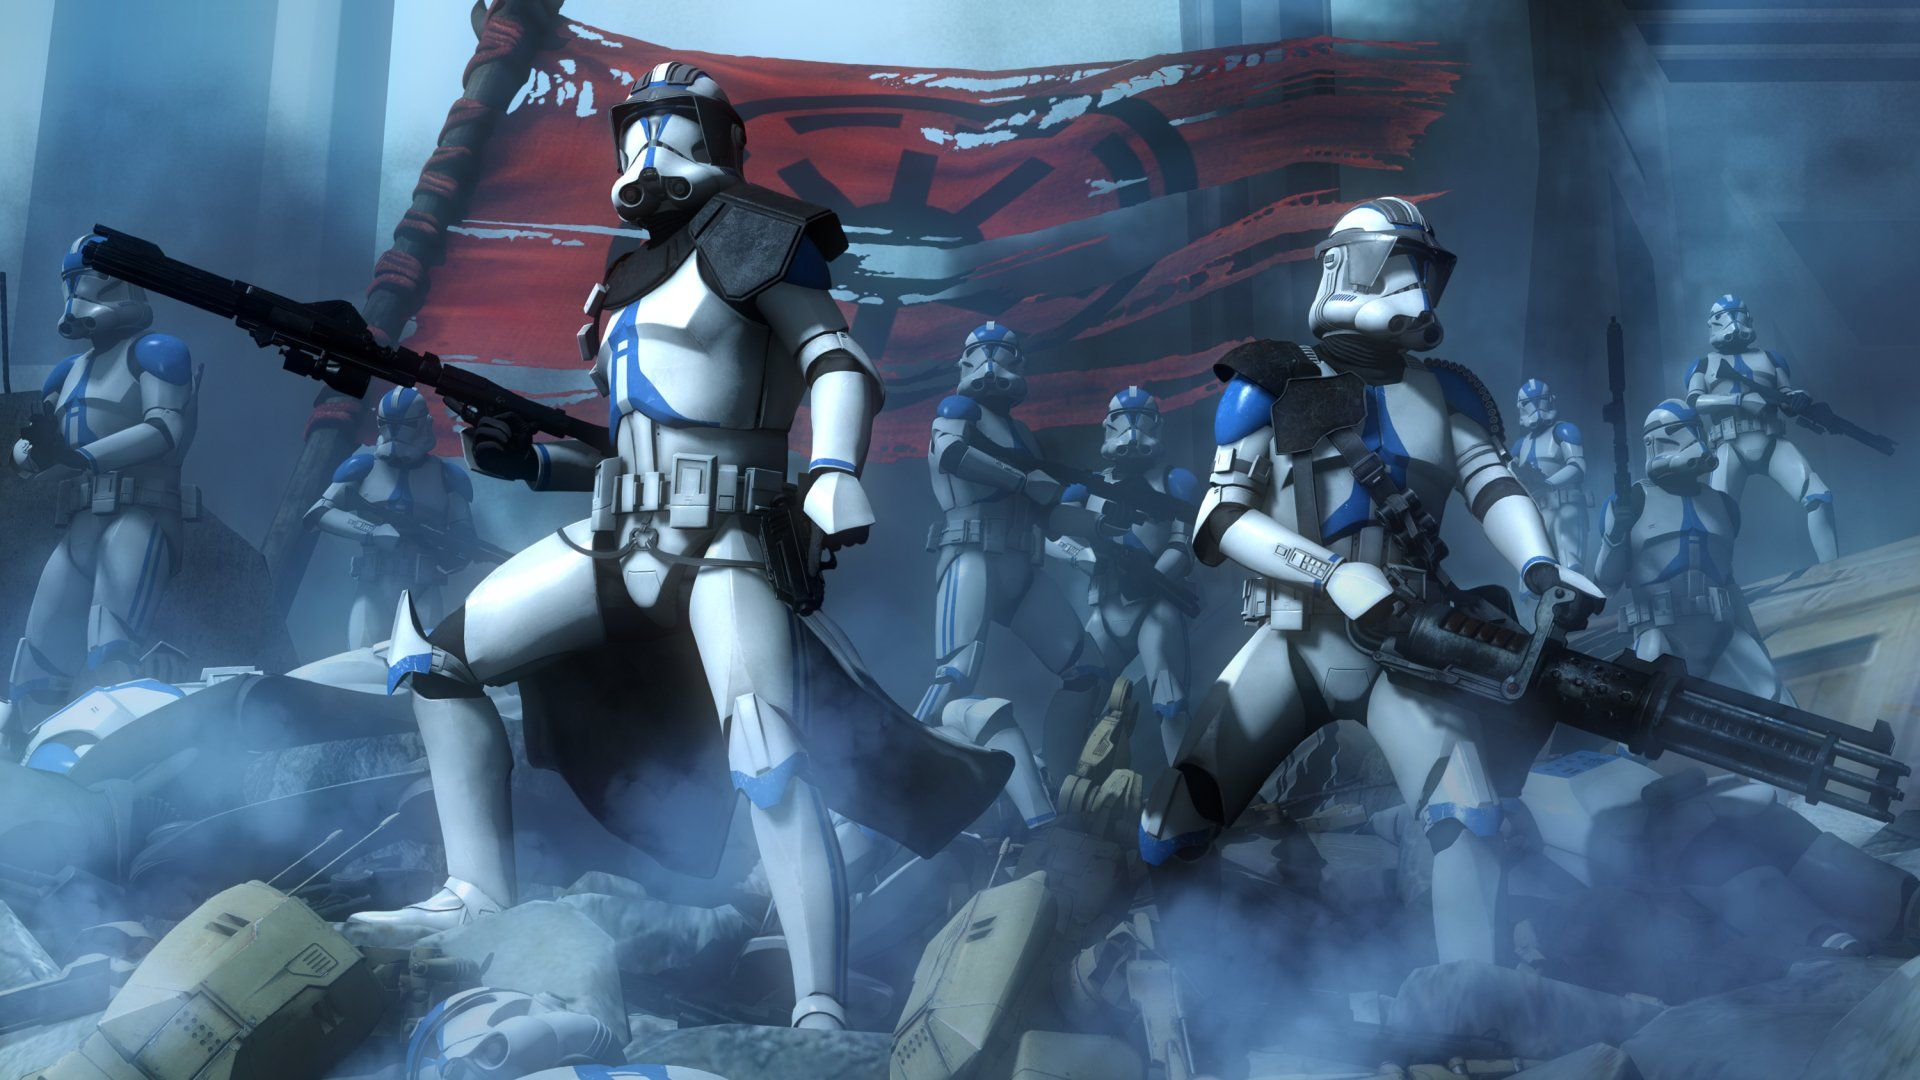 Pin by Charles bledsoe on 7th Legion Star wars facts Star wars 1920x1080